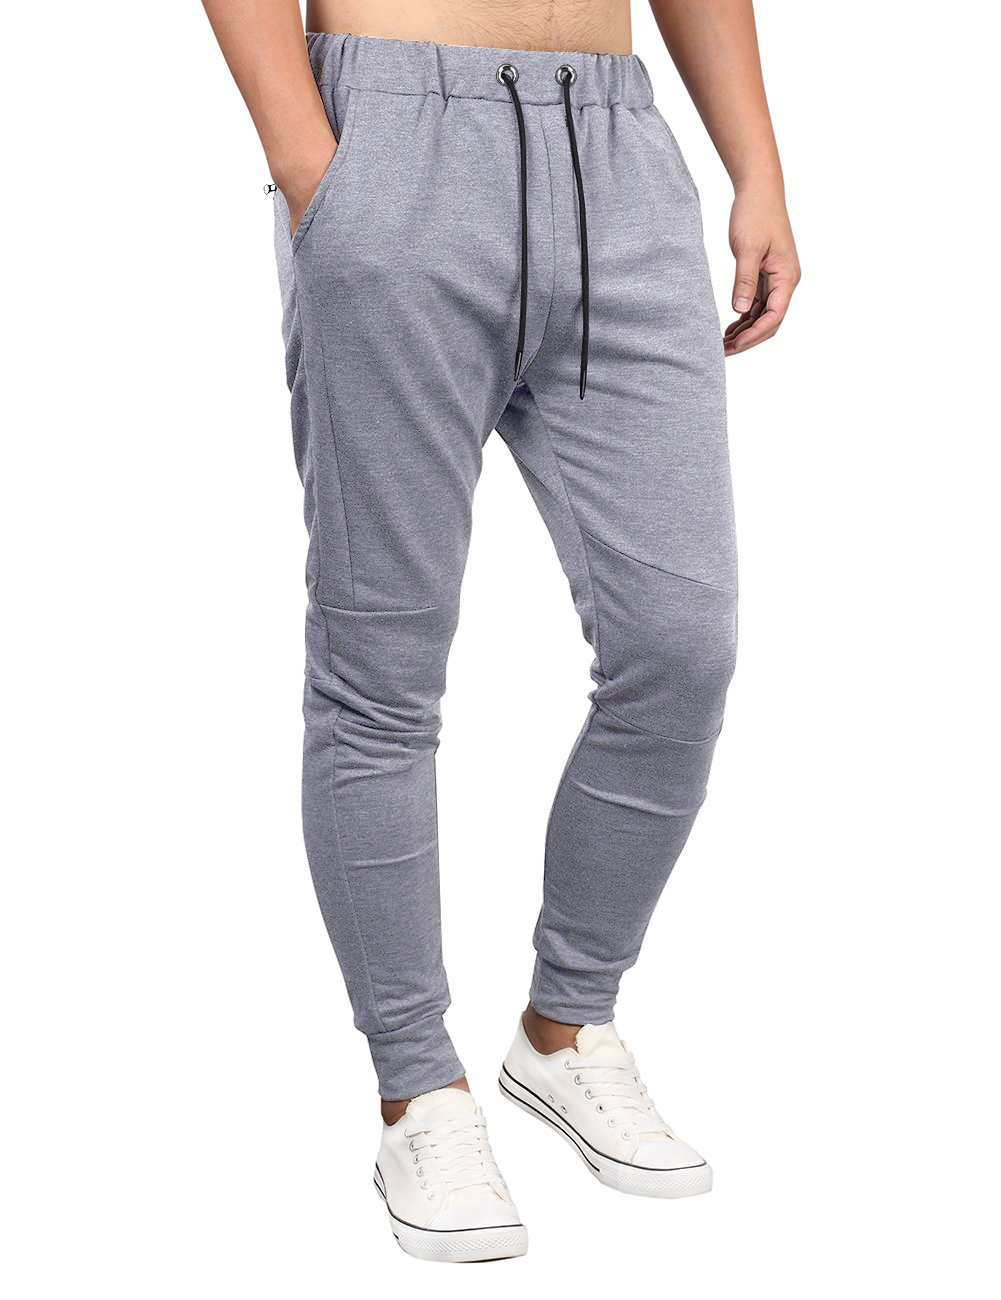 Kuulee Men's Casual Sport Jogger Drawstring Pants Sweatpants with Pockets